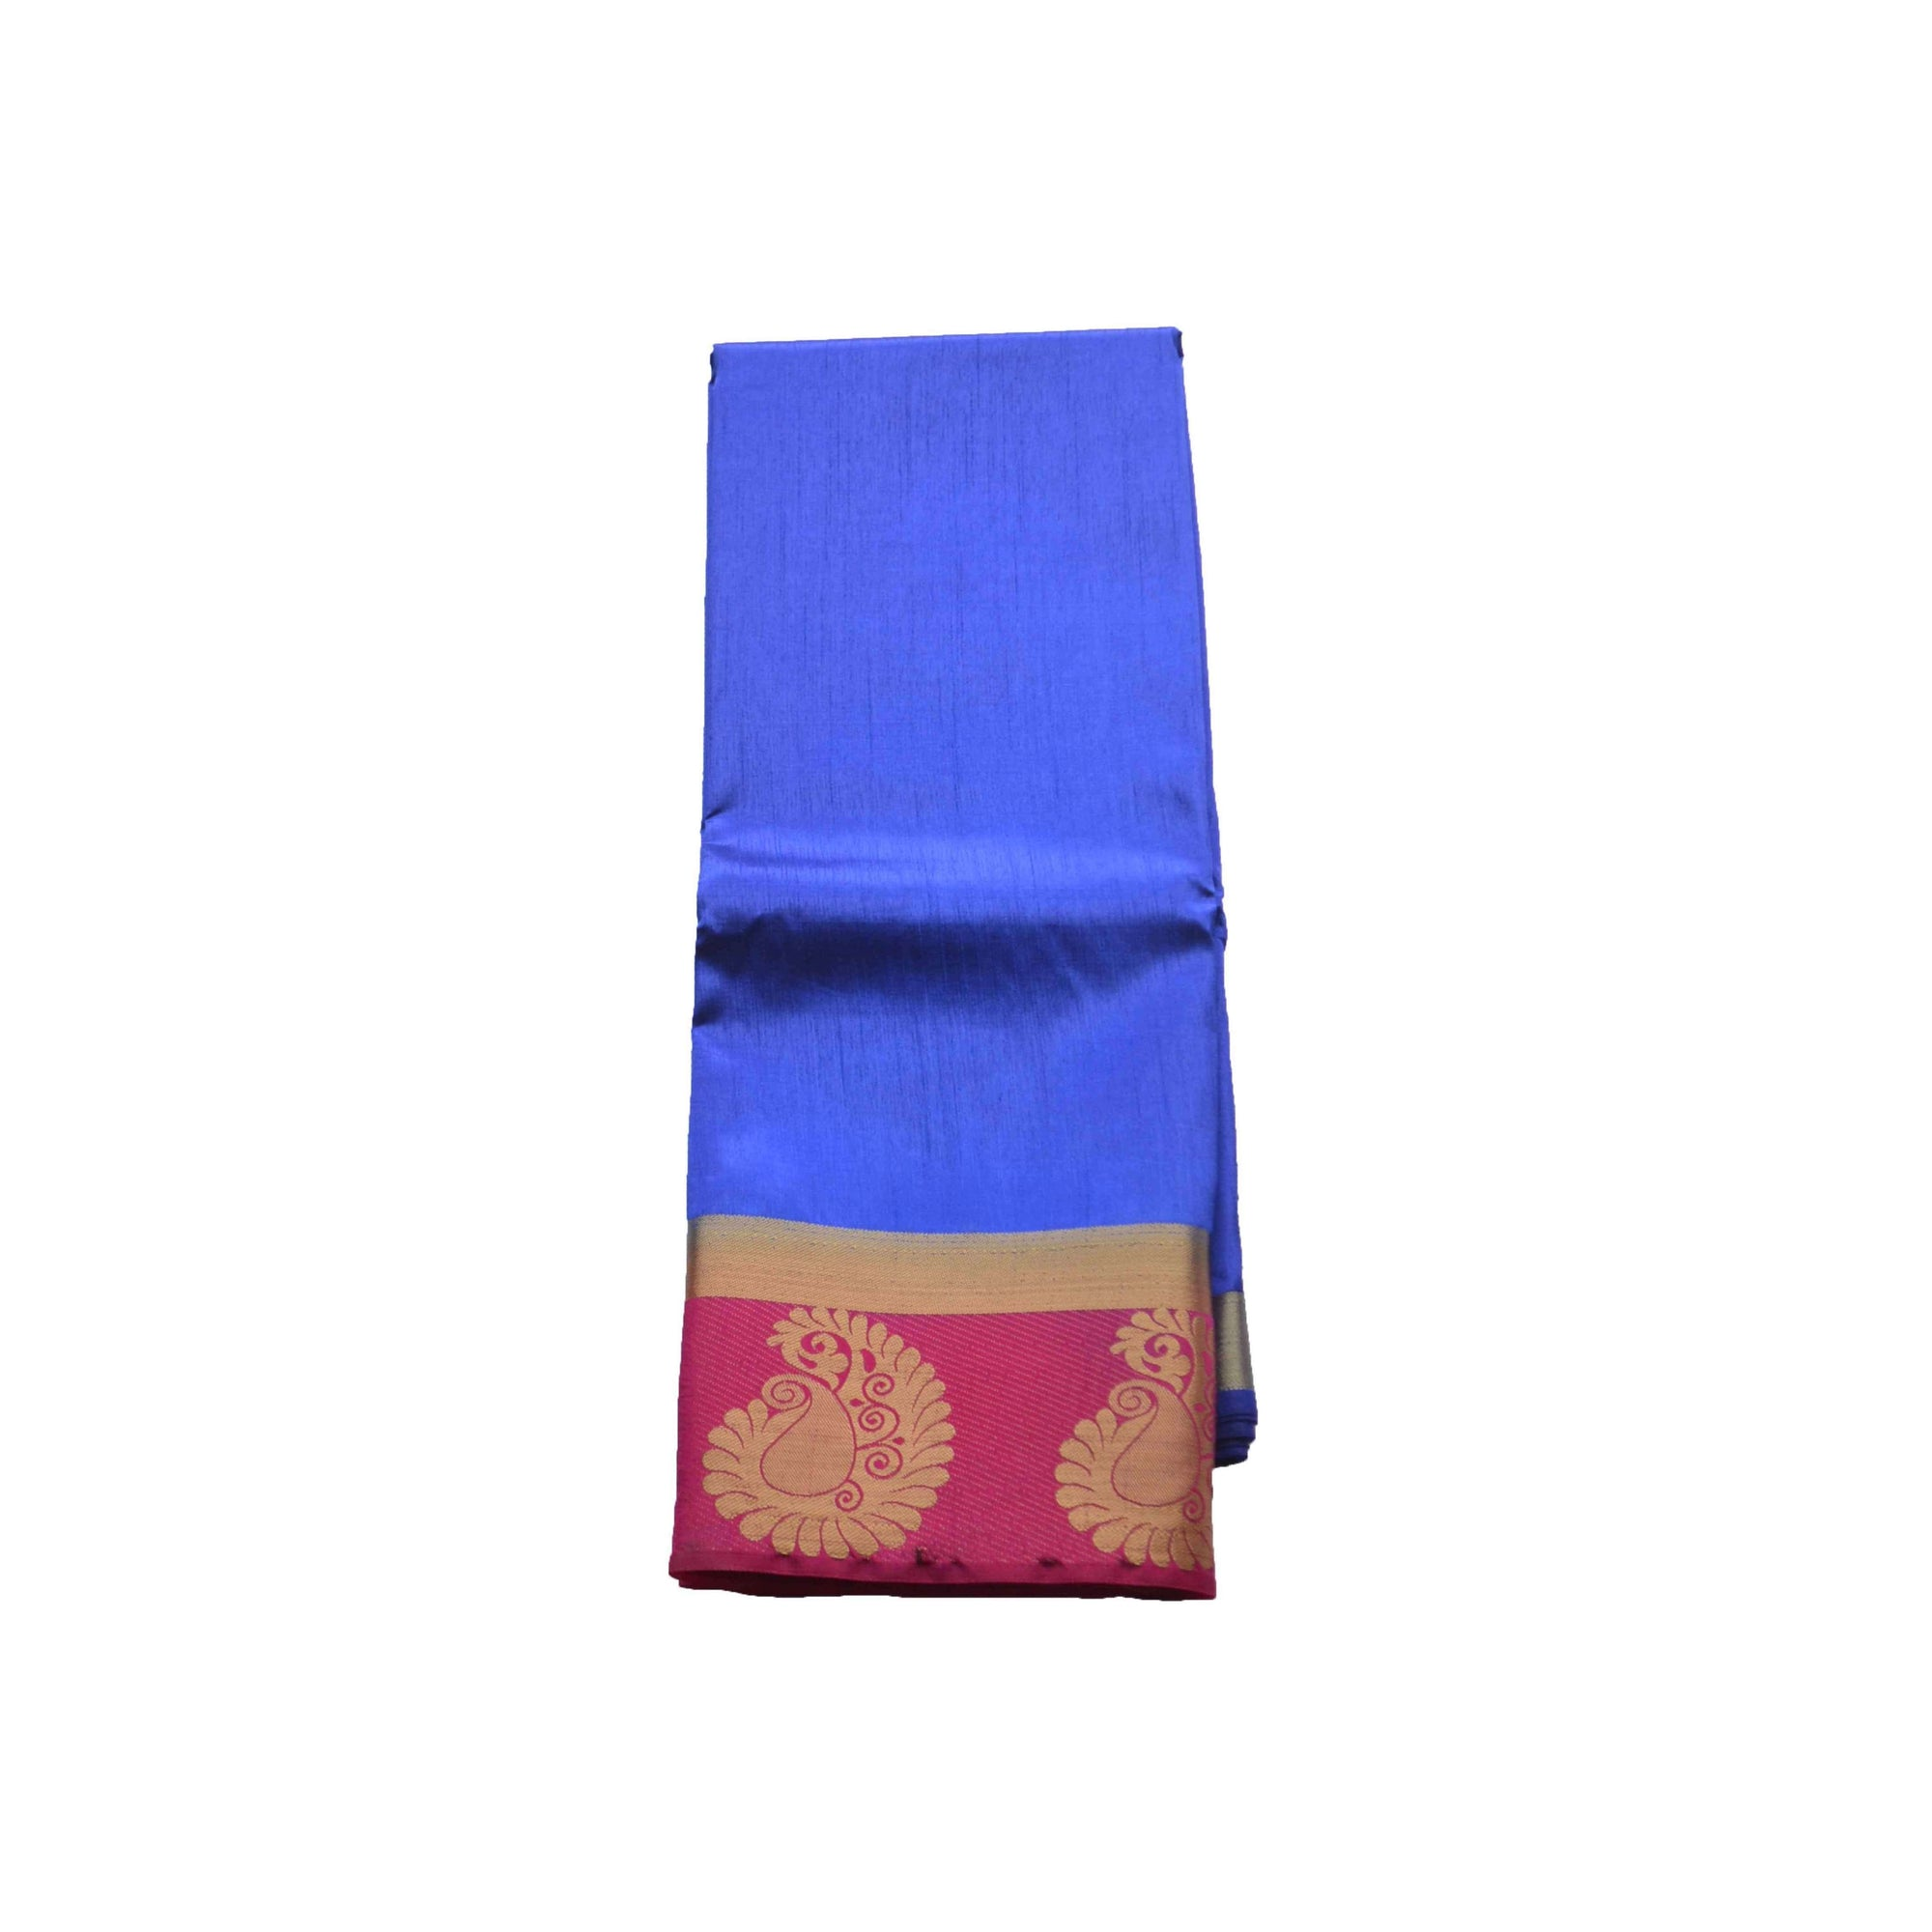 arars Women's kanchipuram kanjivaram pattu style art silk colour saree with blouse (347 ROYAL BLUE)